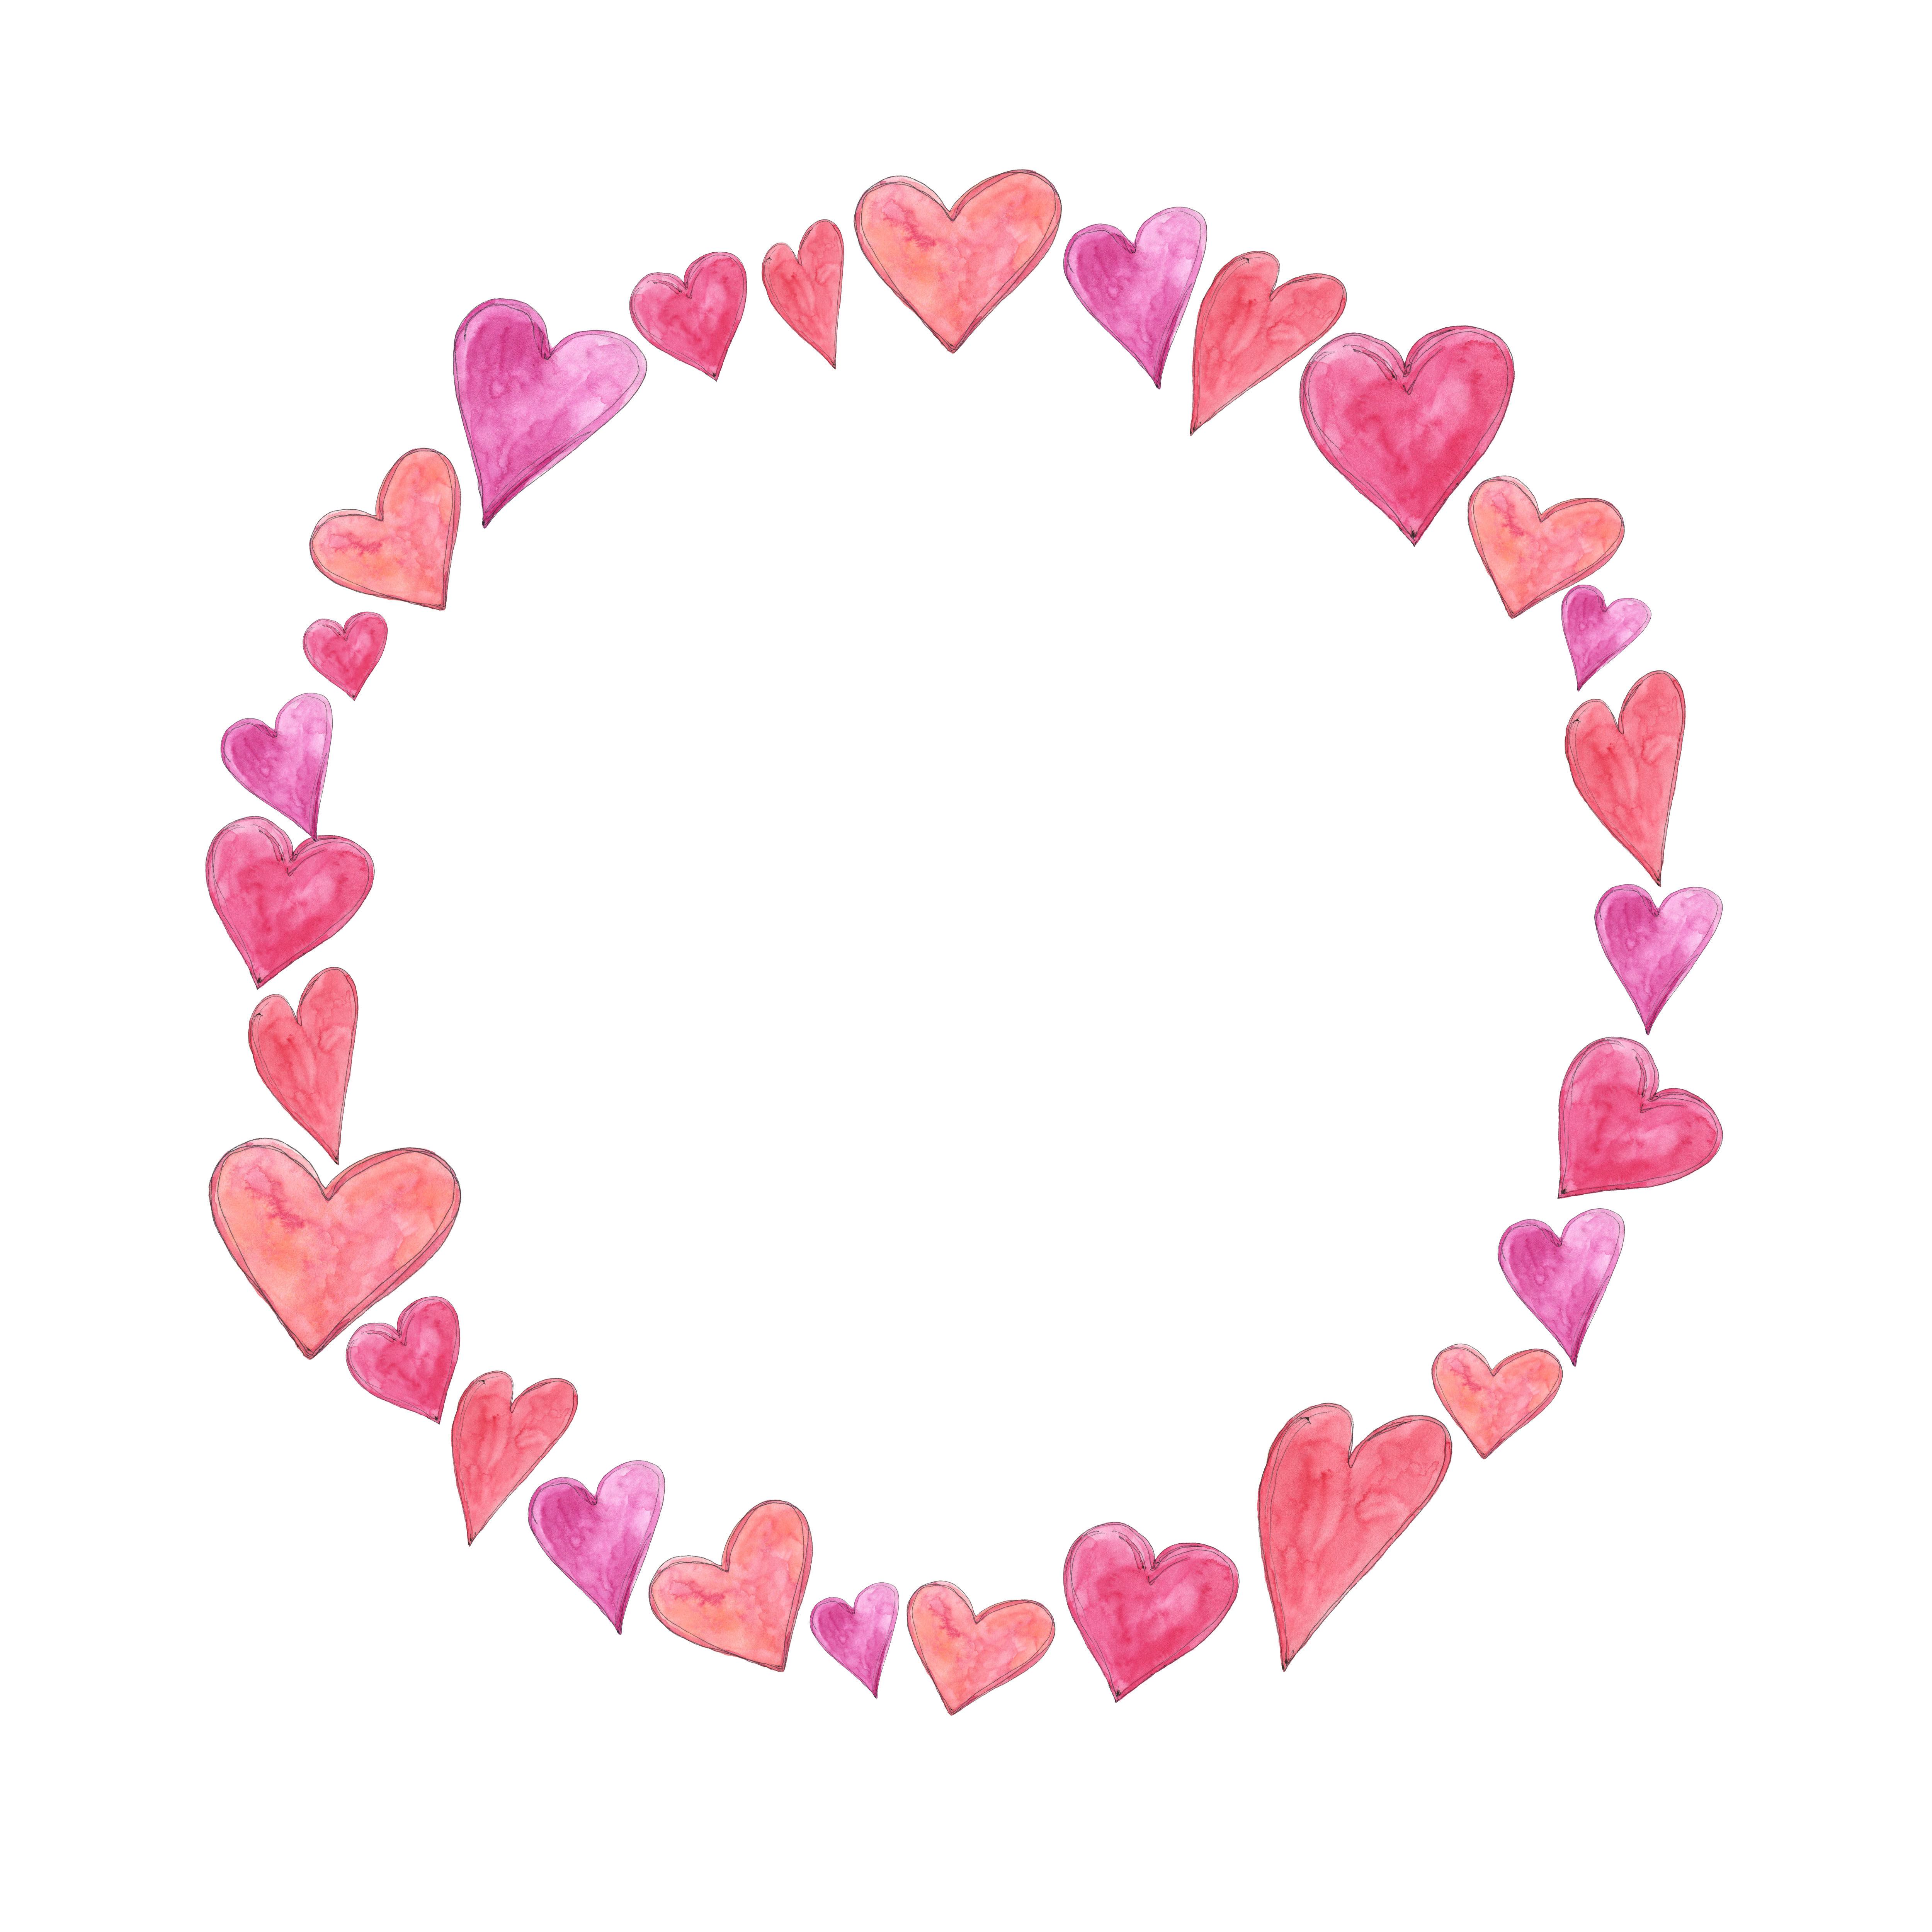 Love Watercolor Circle Frame Wreath With Hearts By Olyamore